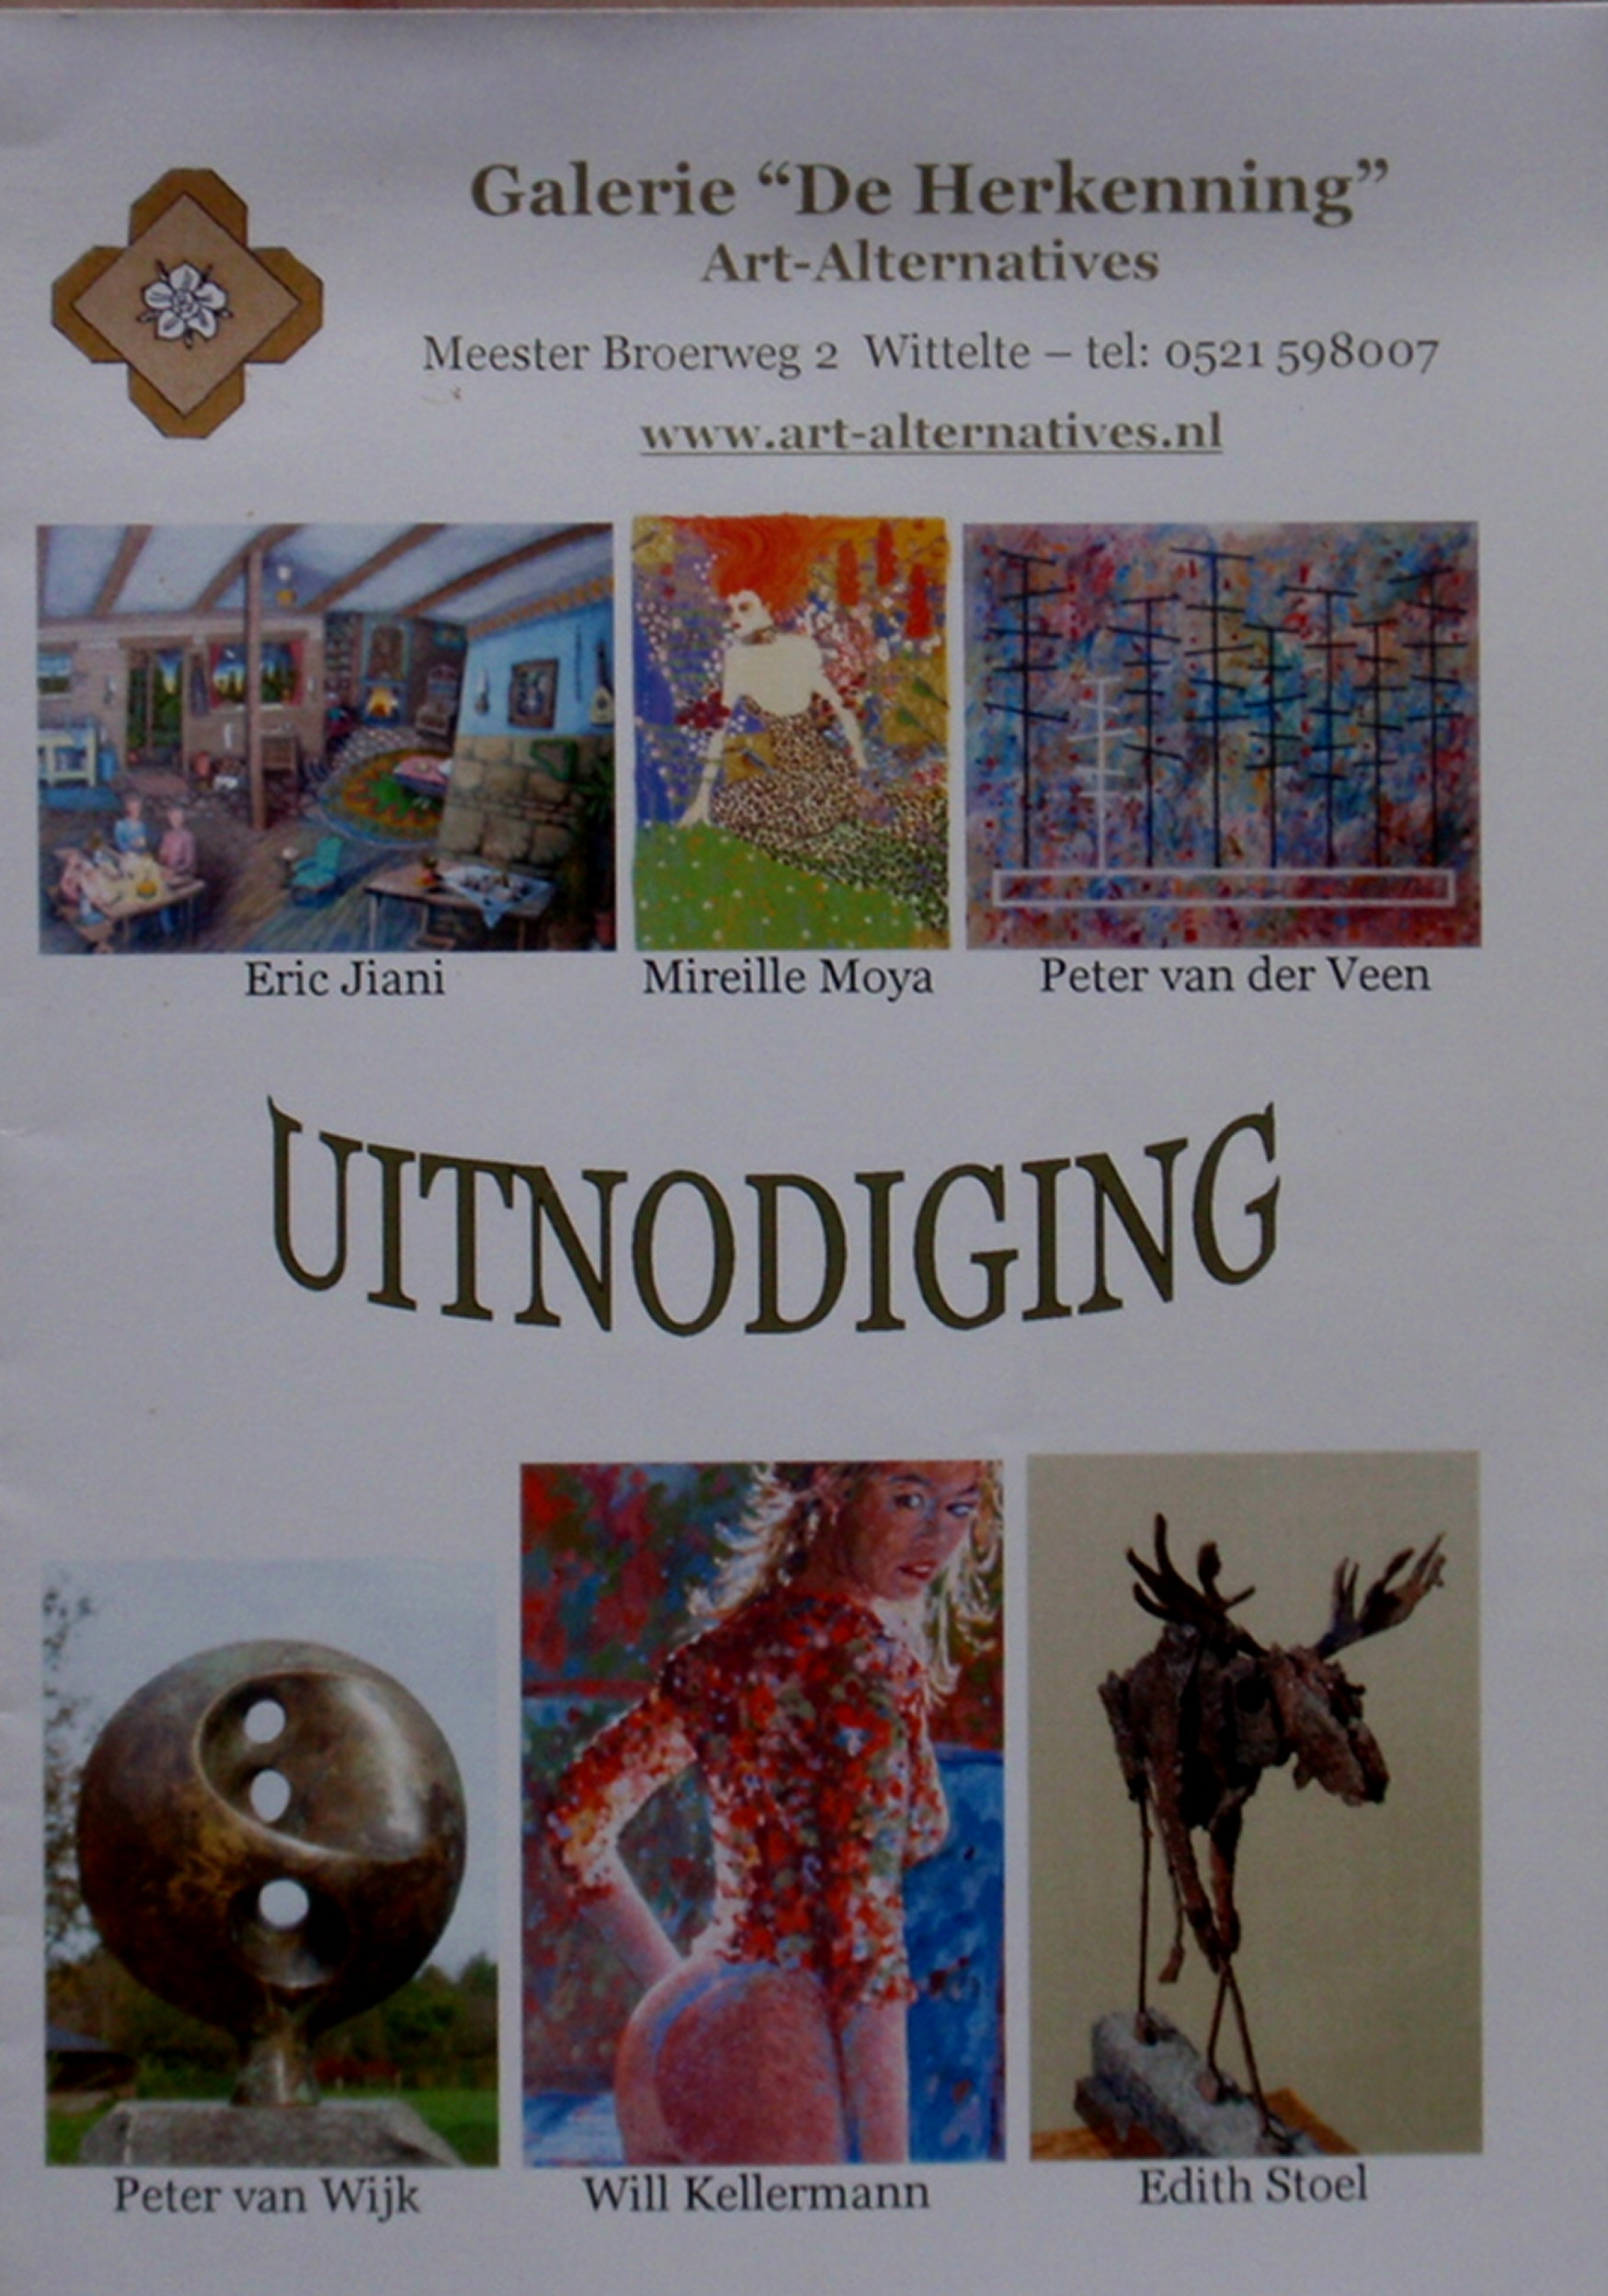 2006. Uitnodiging Preview Edinburgh, galerie De Herkenning.